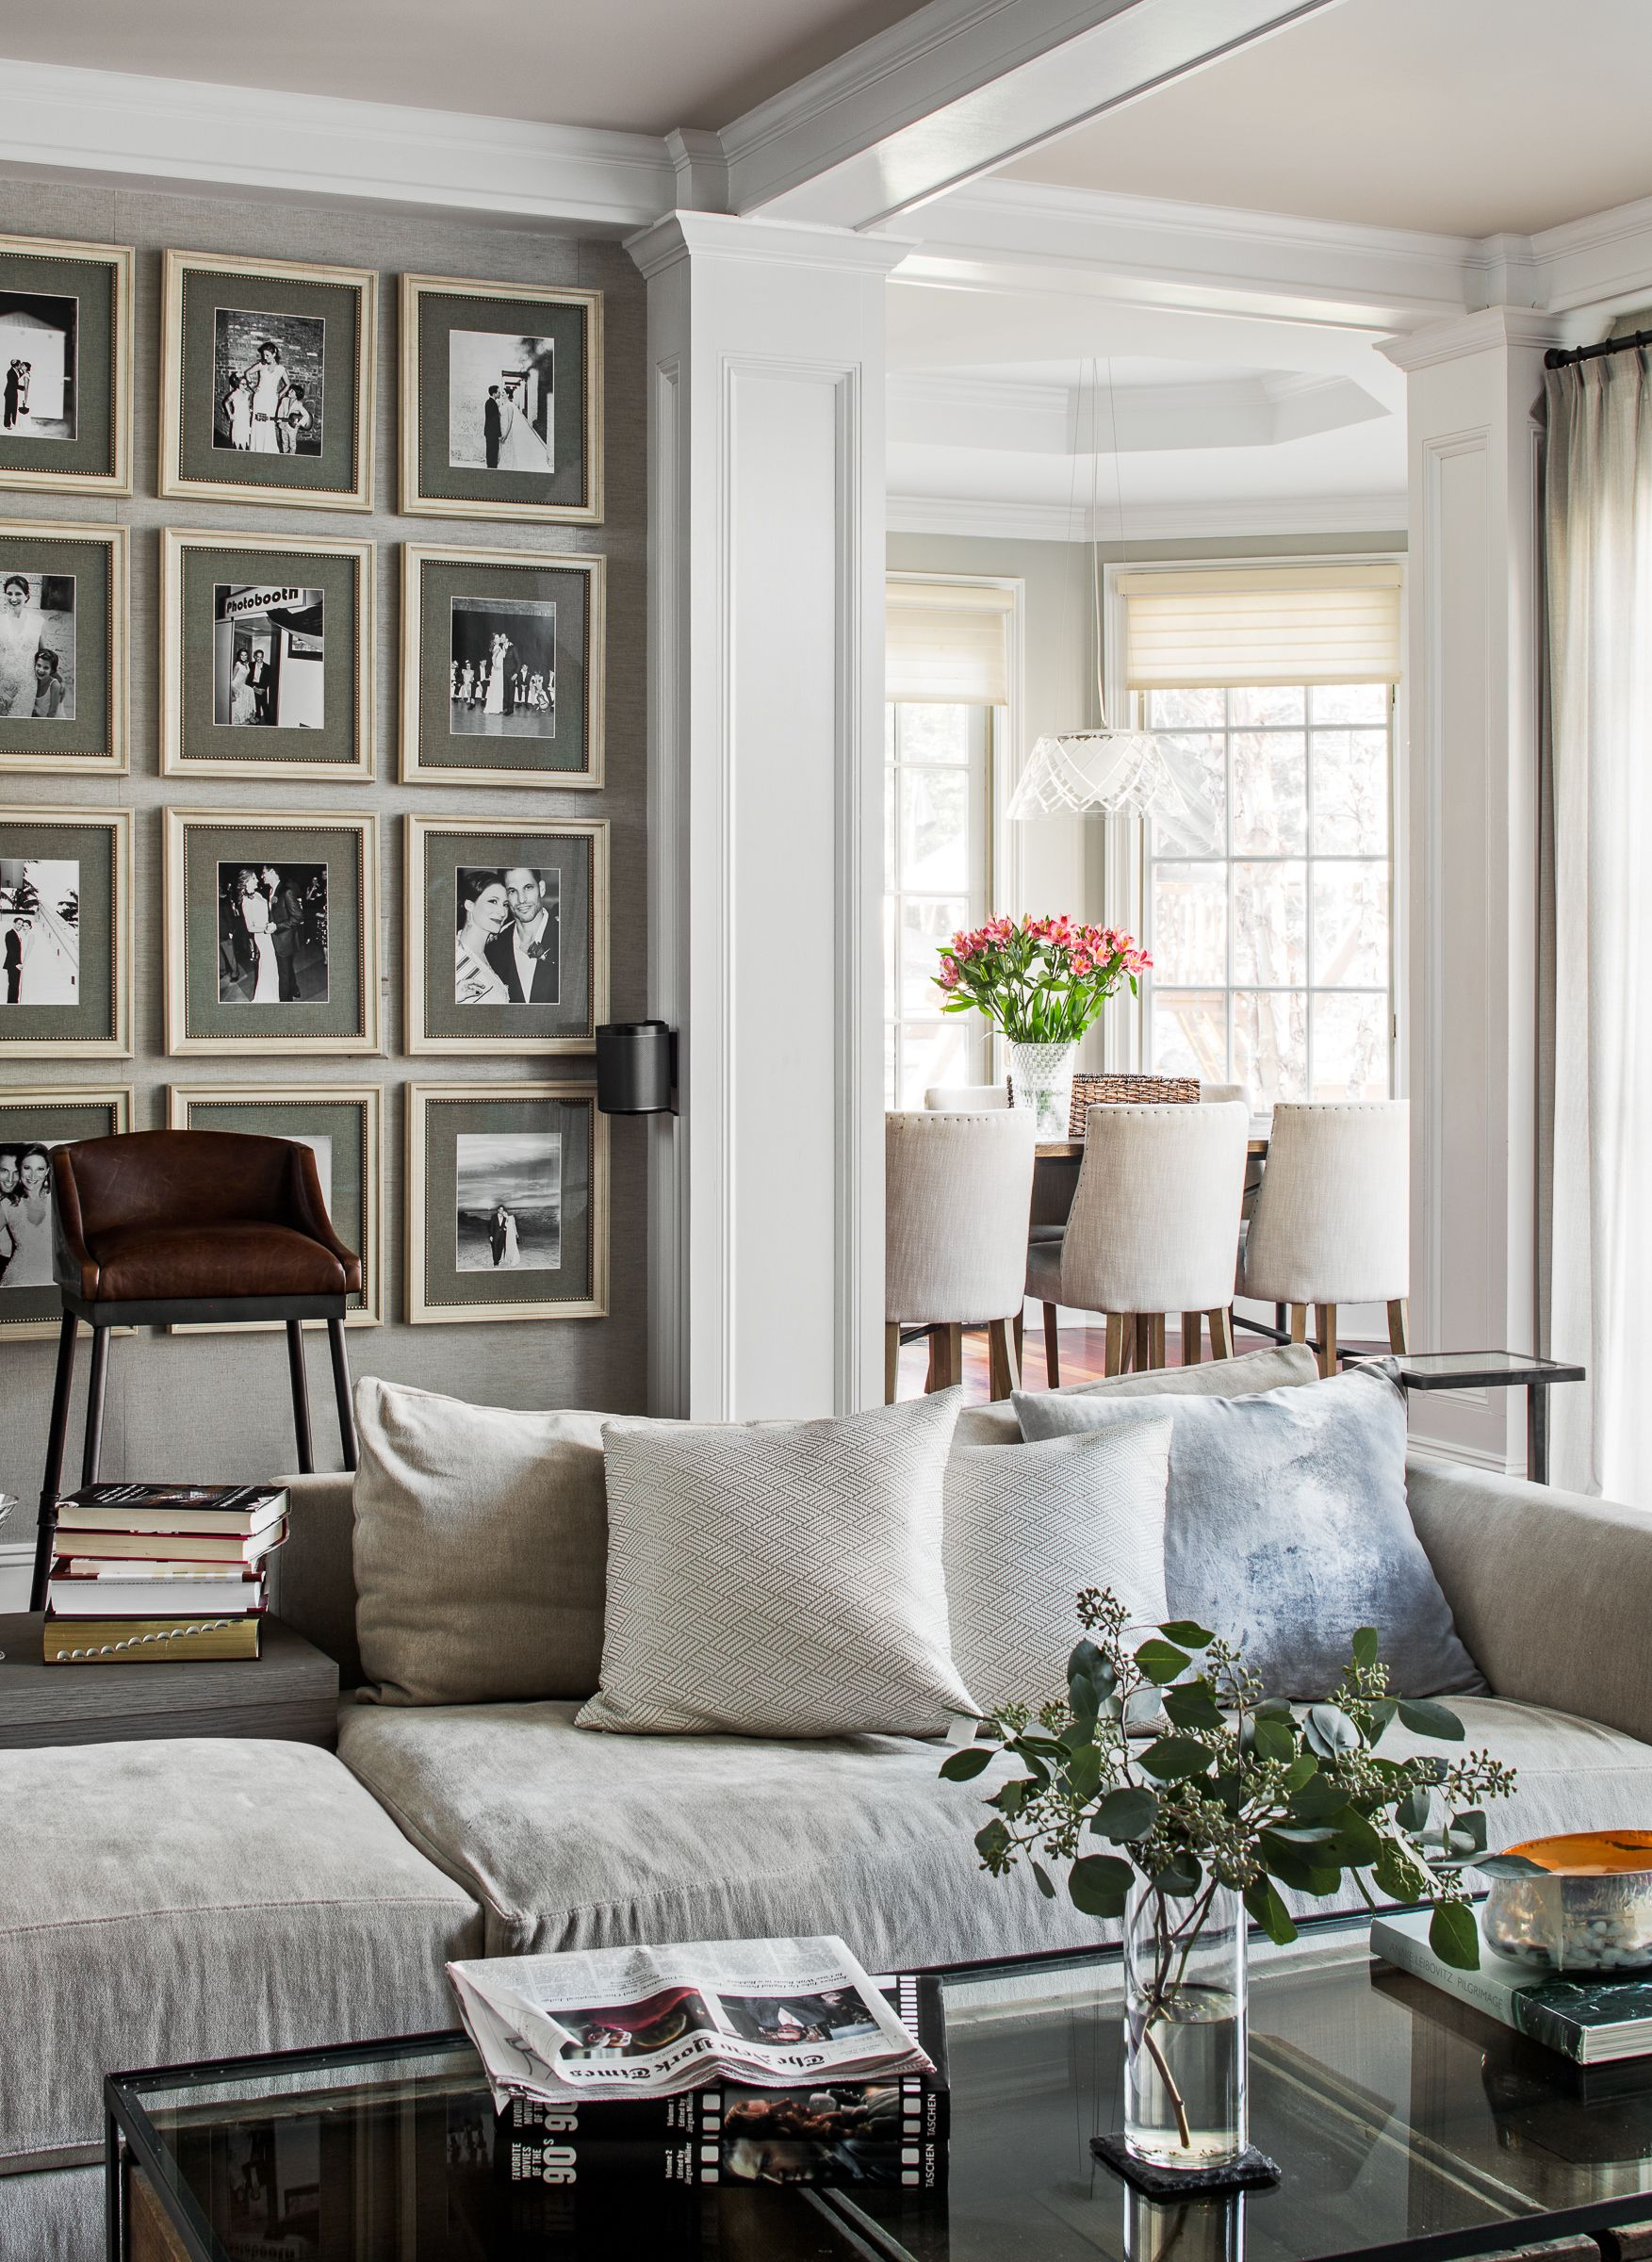 Latest Drawing Room Design: A Classic Neutral Living Room Design Idea With A Black And